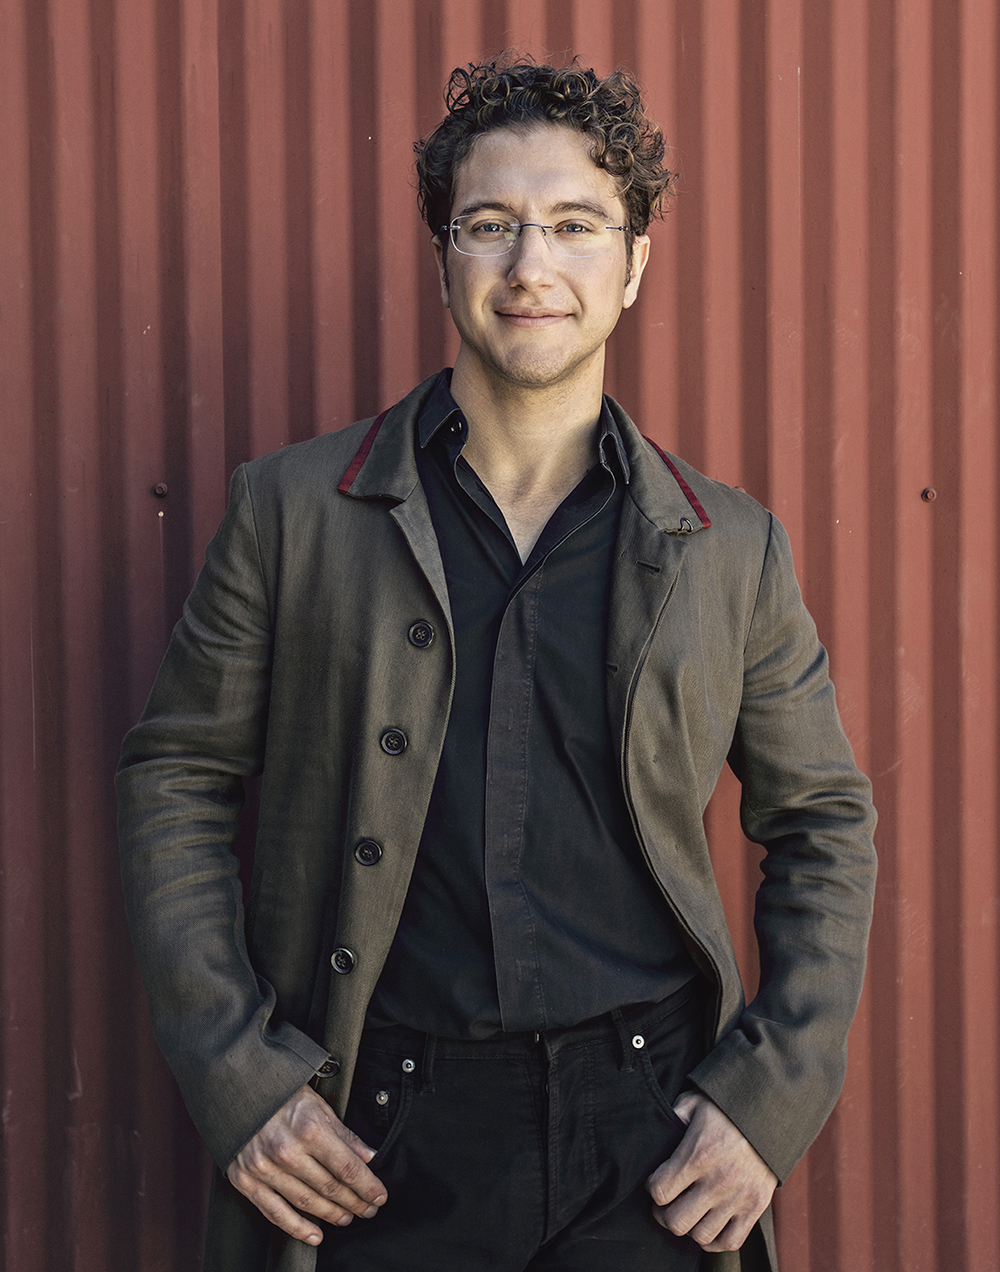 2022 Muscial America Conductor of the Year:<br>Teddy Abrams